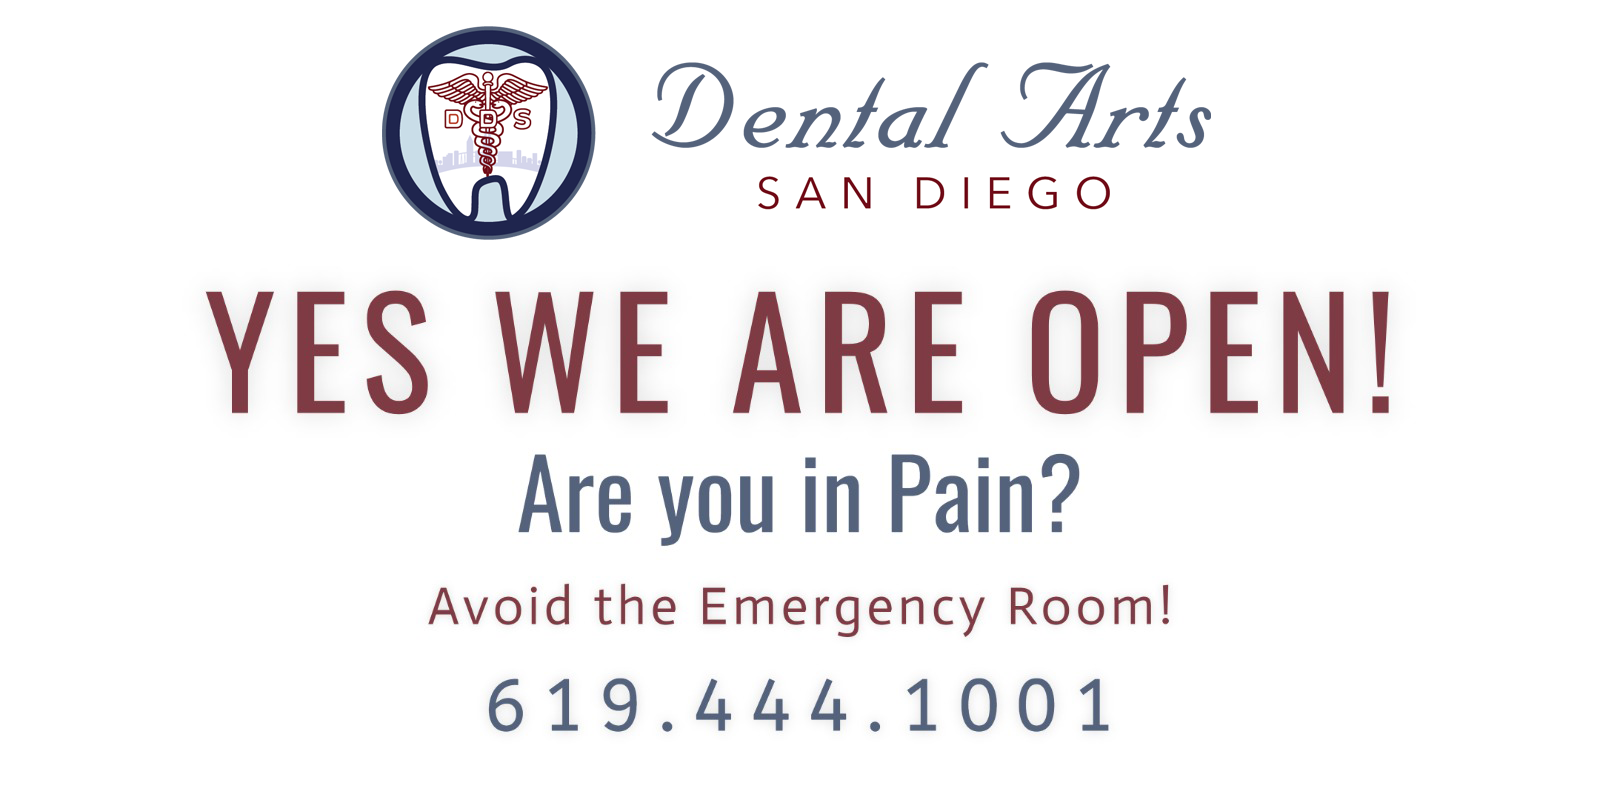 Yes, We Are Open. In pain? Avoid the emergency room!